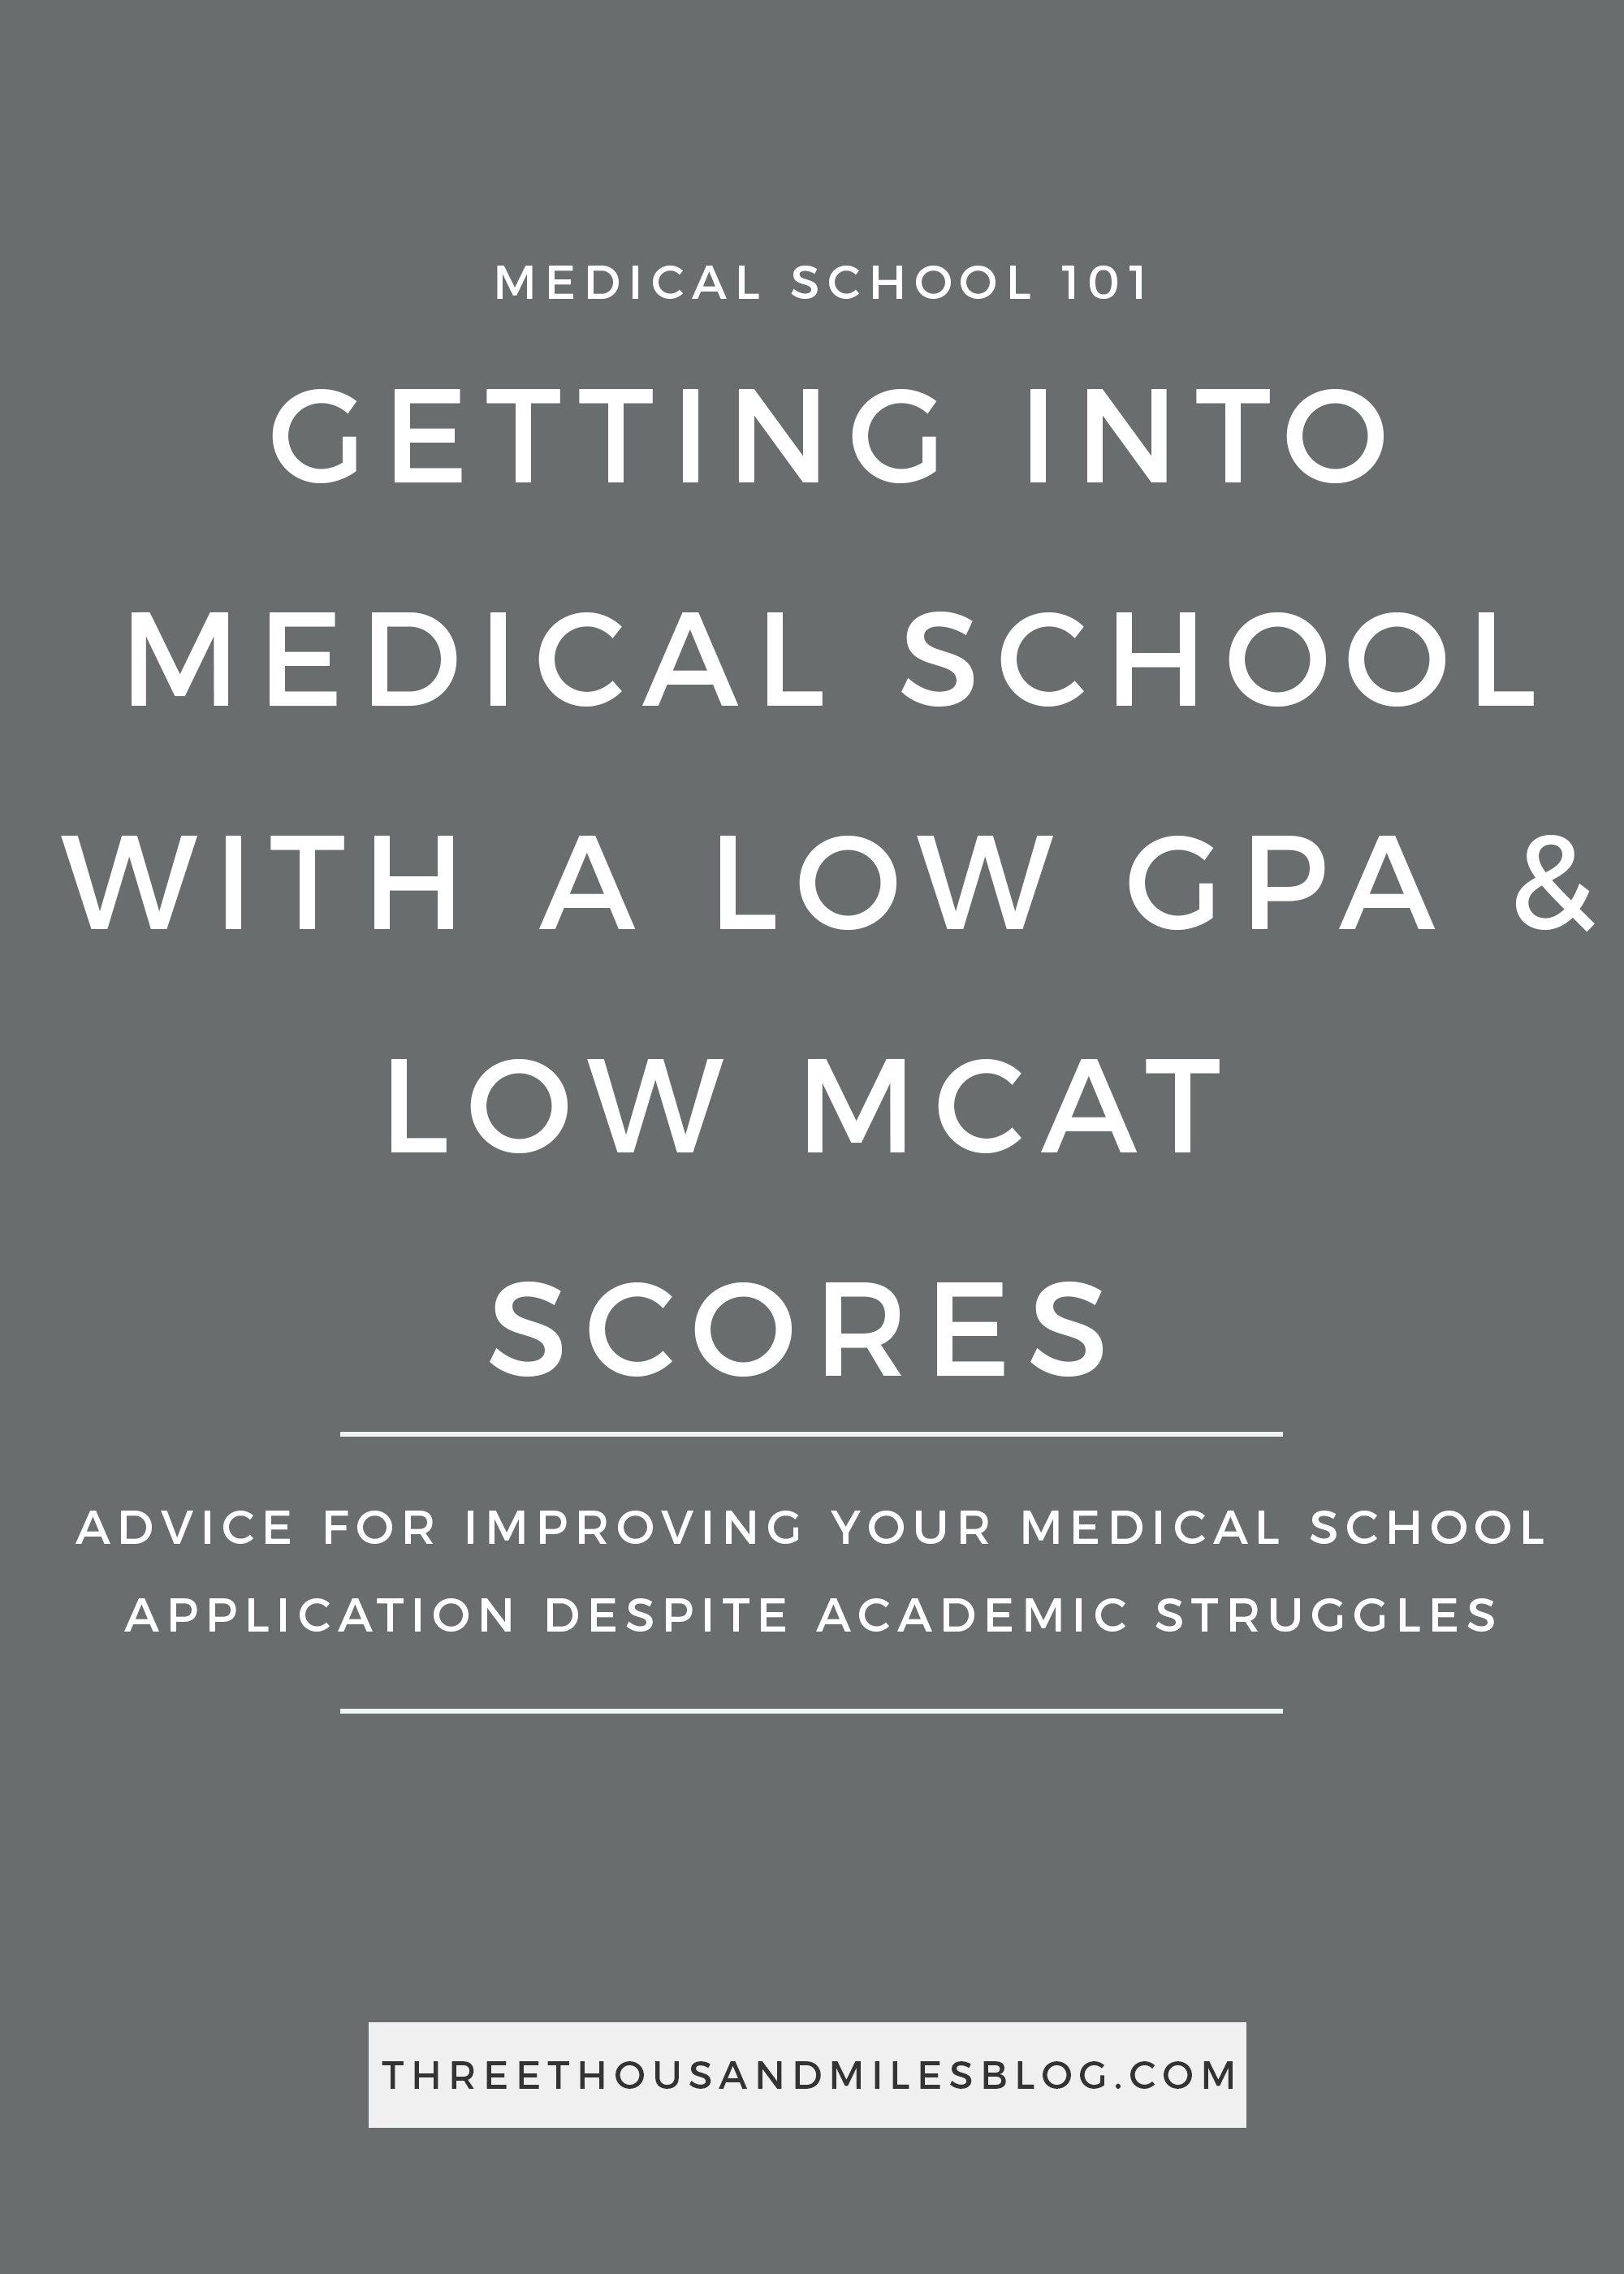 How to Get Into Medical School With a Low GPA and MCAT